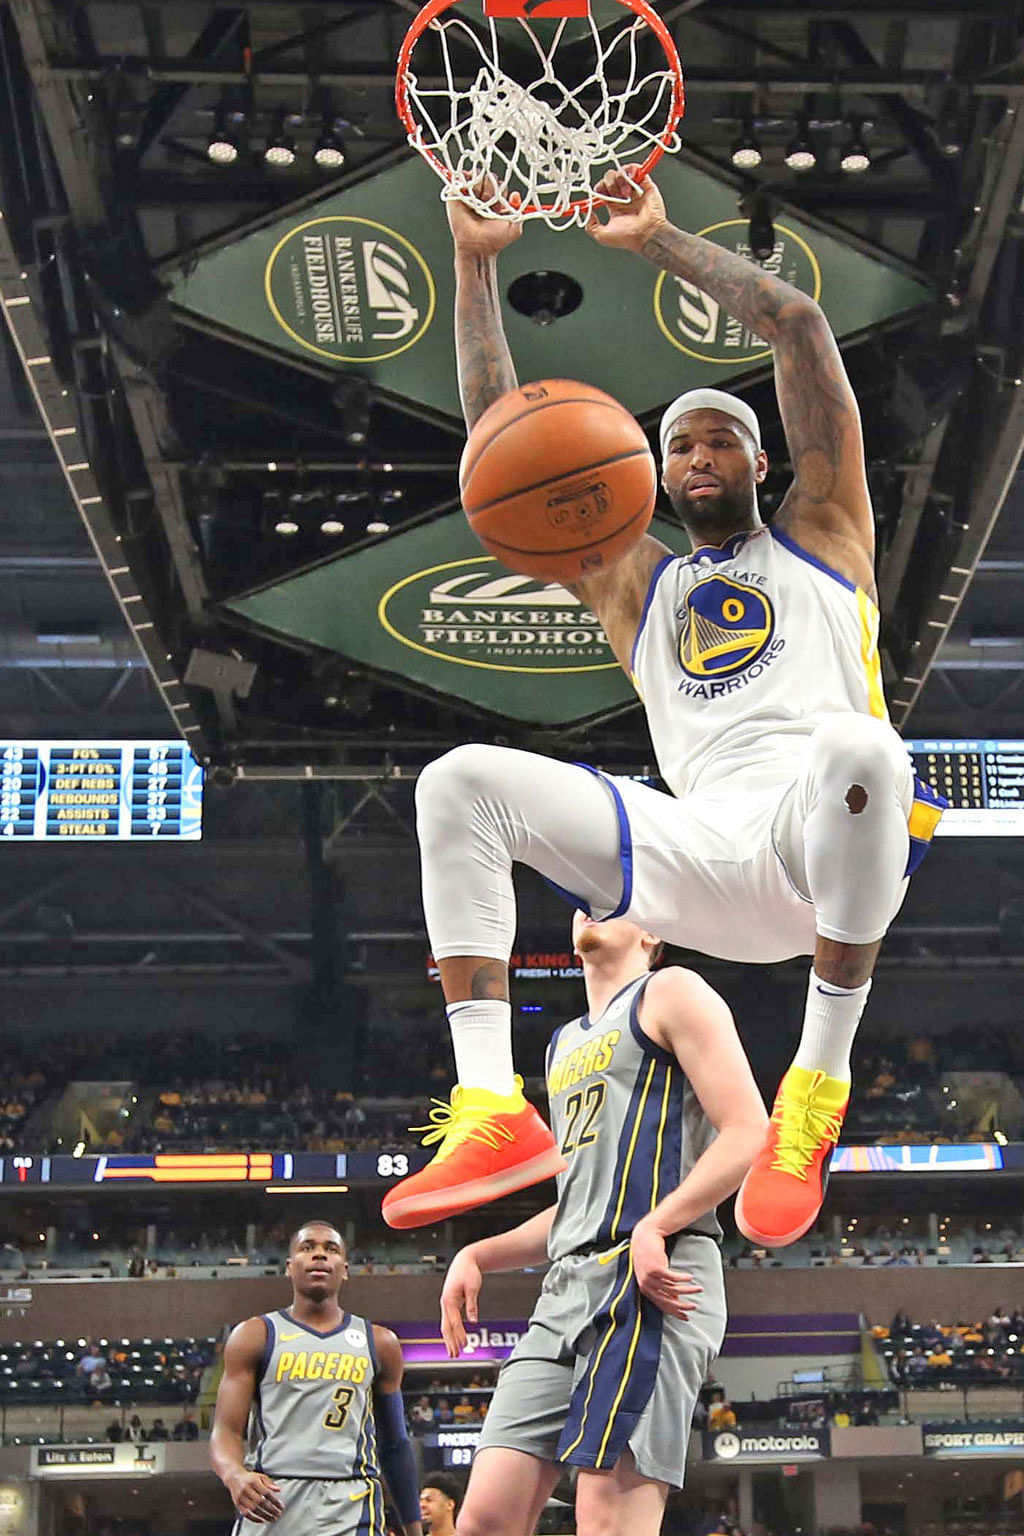 Golden State Warriors centre DeMarcus Cousins dunks against the Indiana Pacers during the fourth quarter of their 132-100 win at the Bankers Life Fieldhouse on Monday.